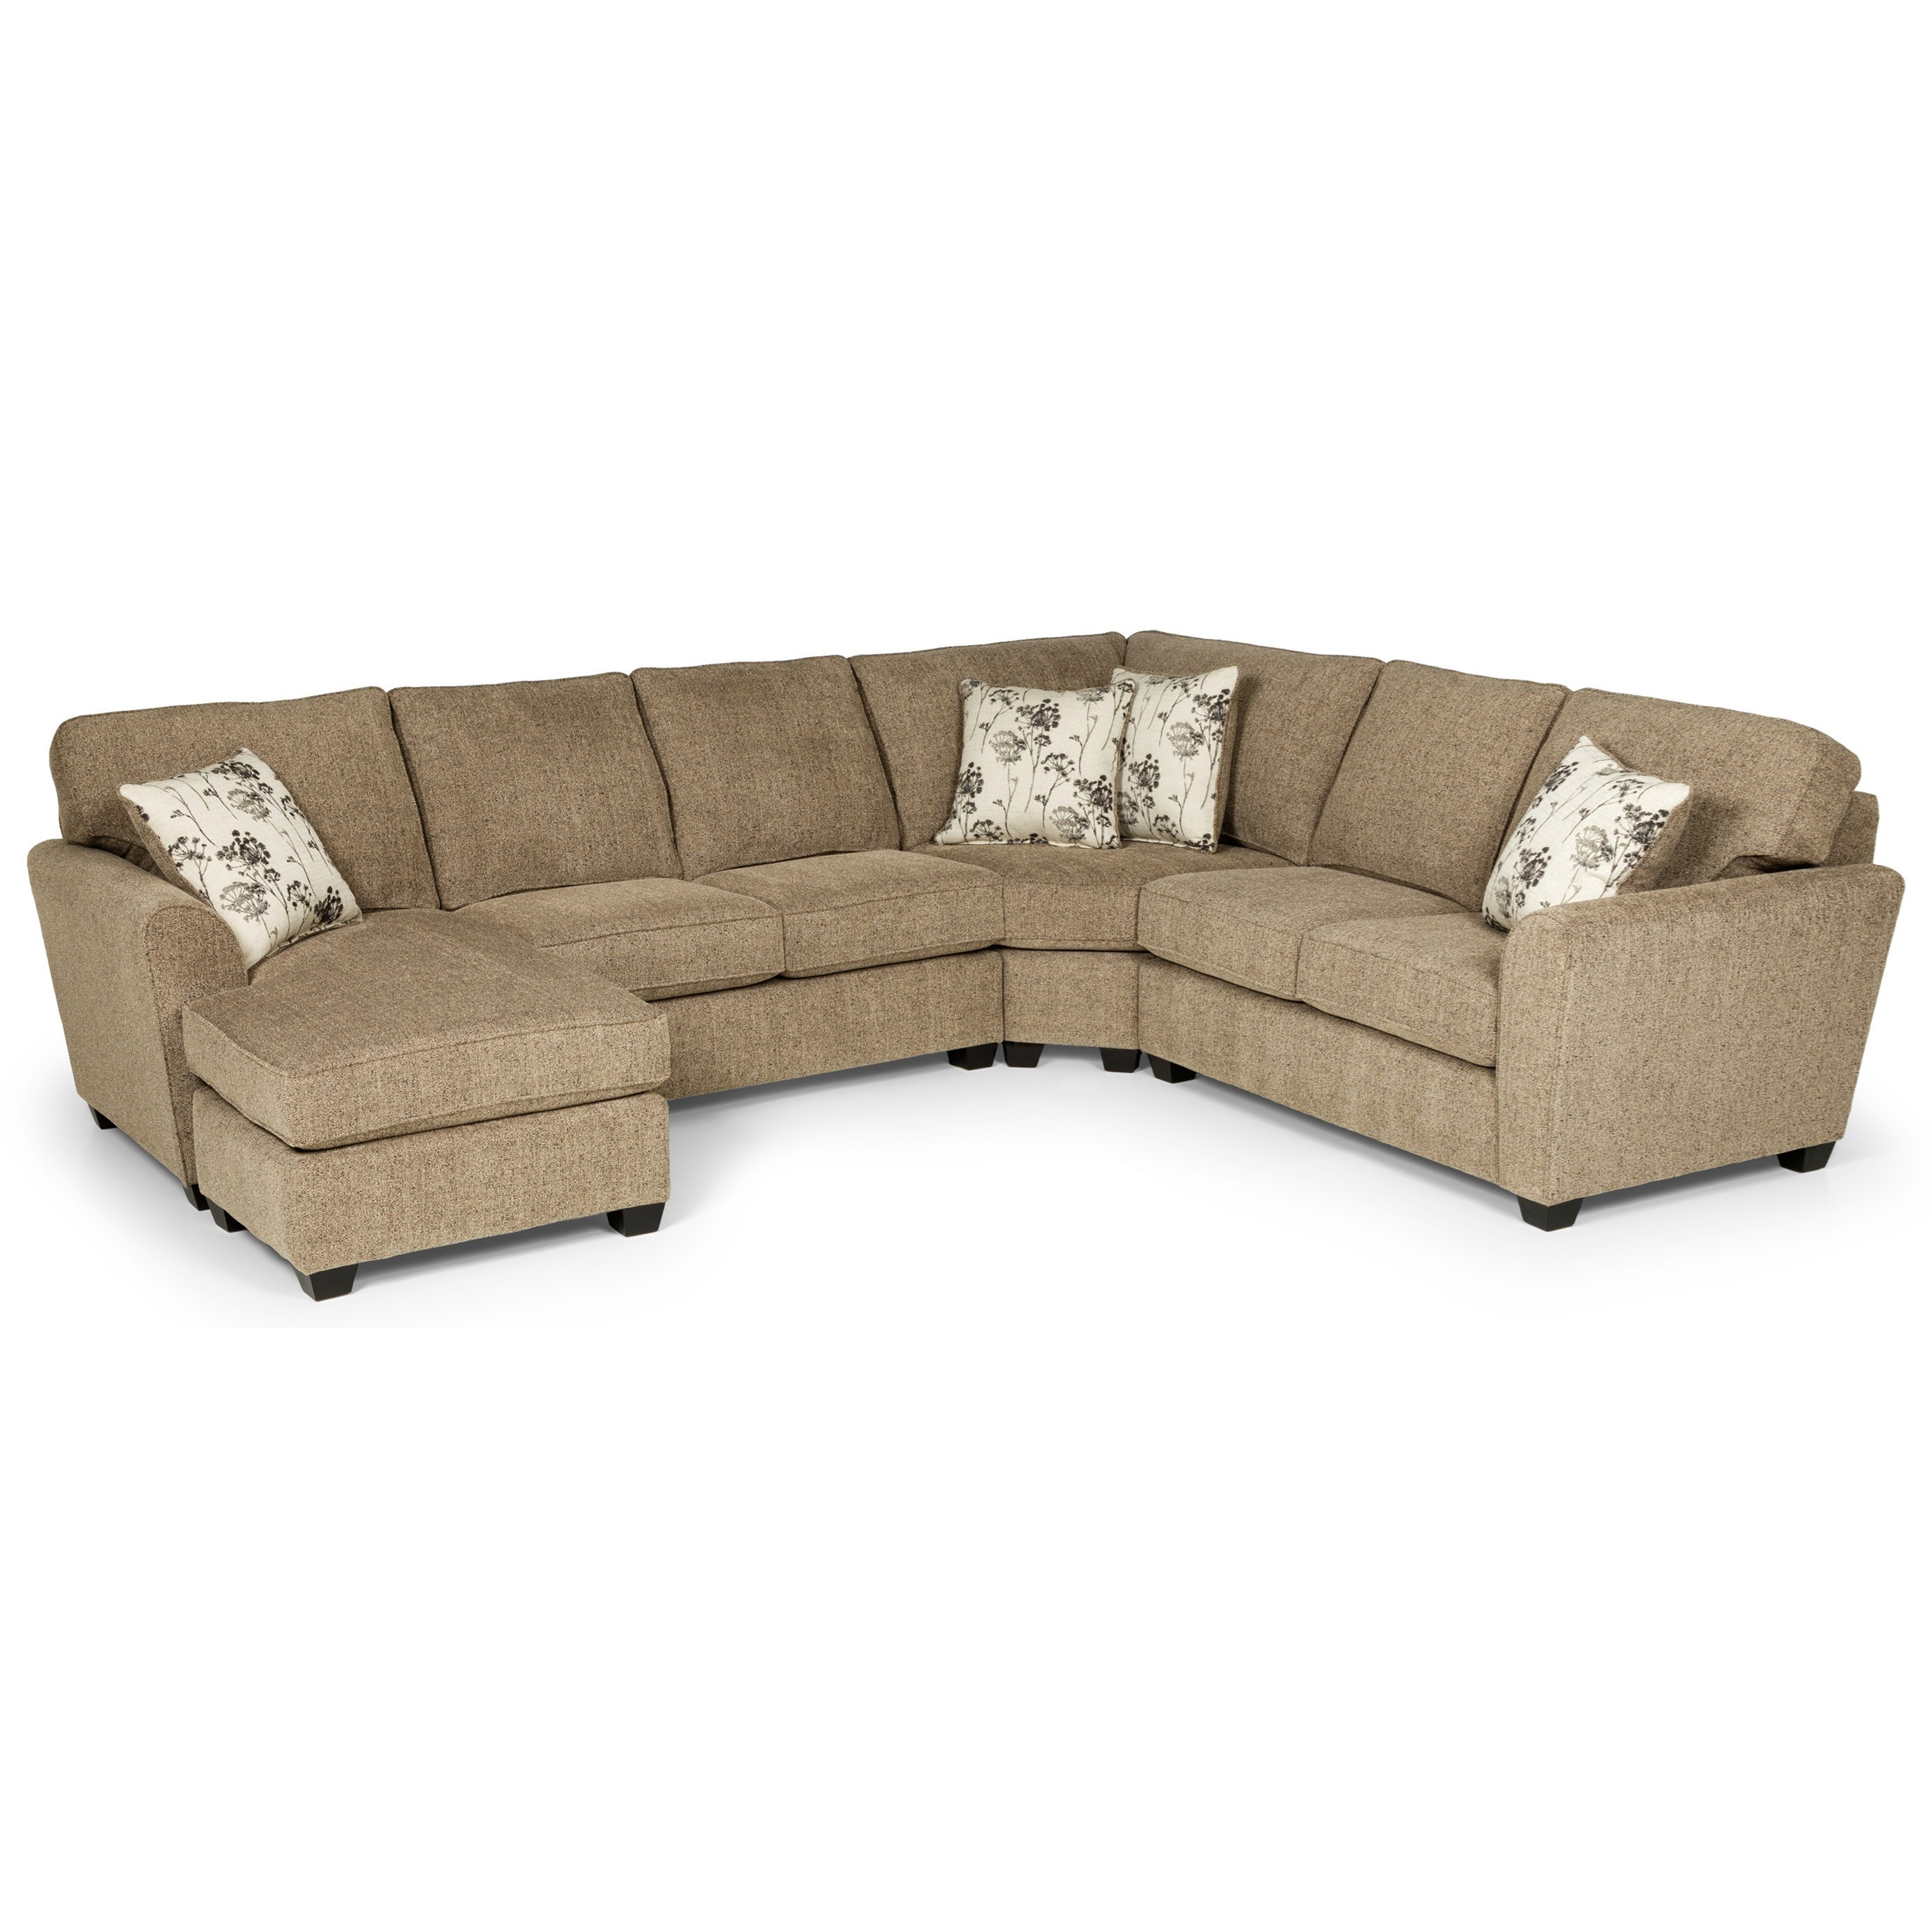 543 5-Seat Sectional Sofa w/ RAF Basic Sleeper by Stanton at Wilson's Furniture